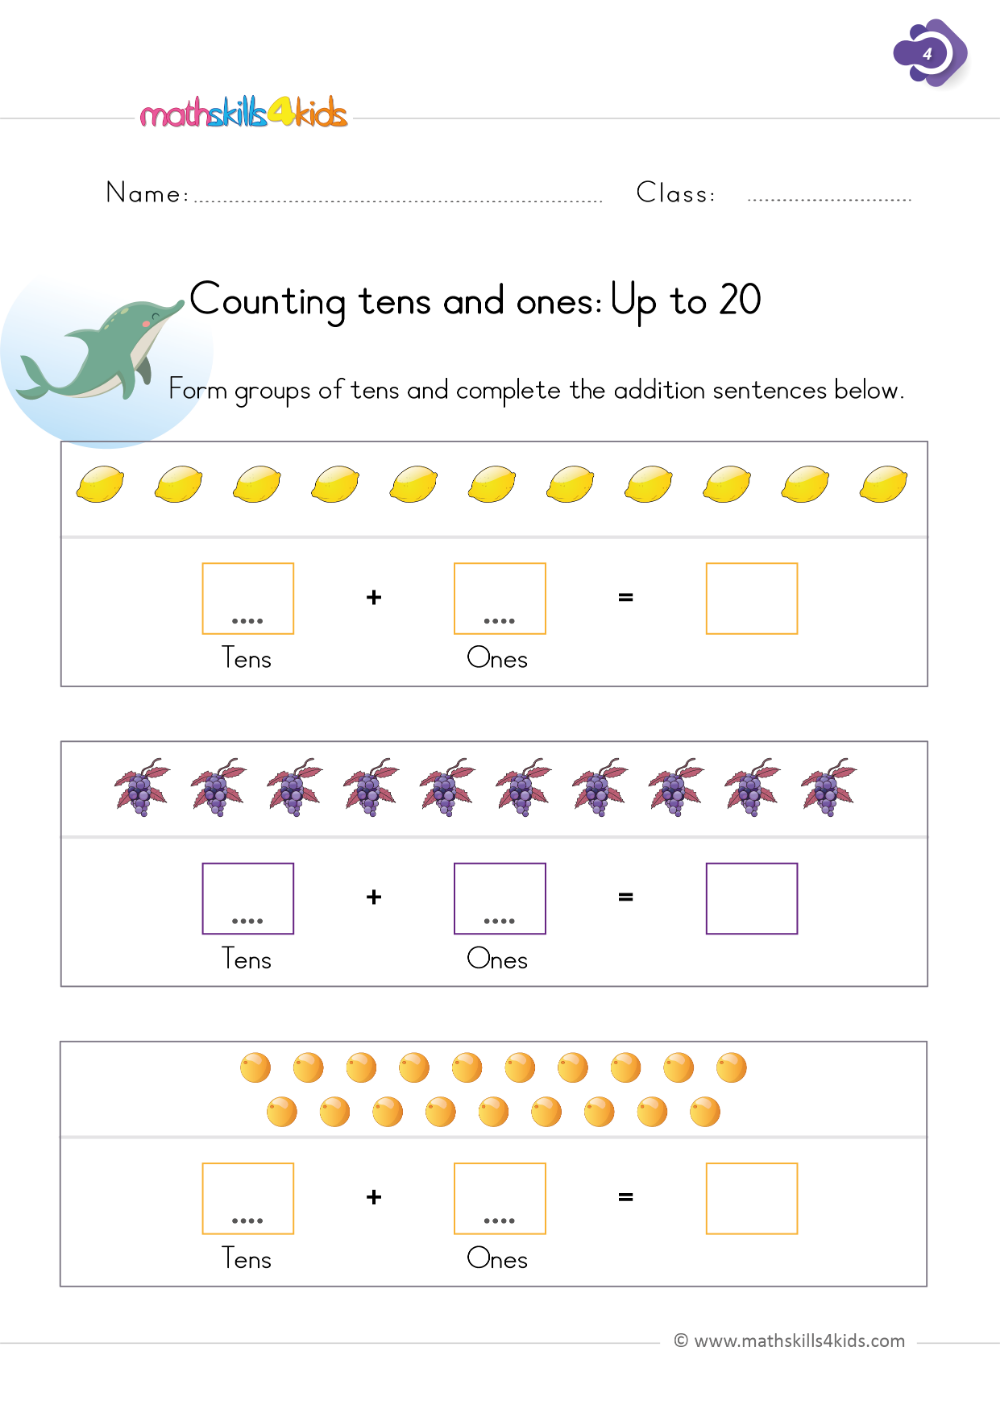 medium resolution of Counting tens and ones - First Grade Math Worksheets   1st grade worksheets